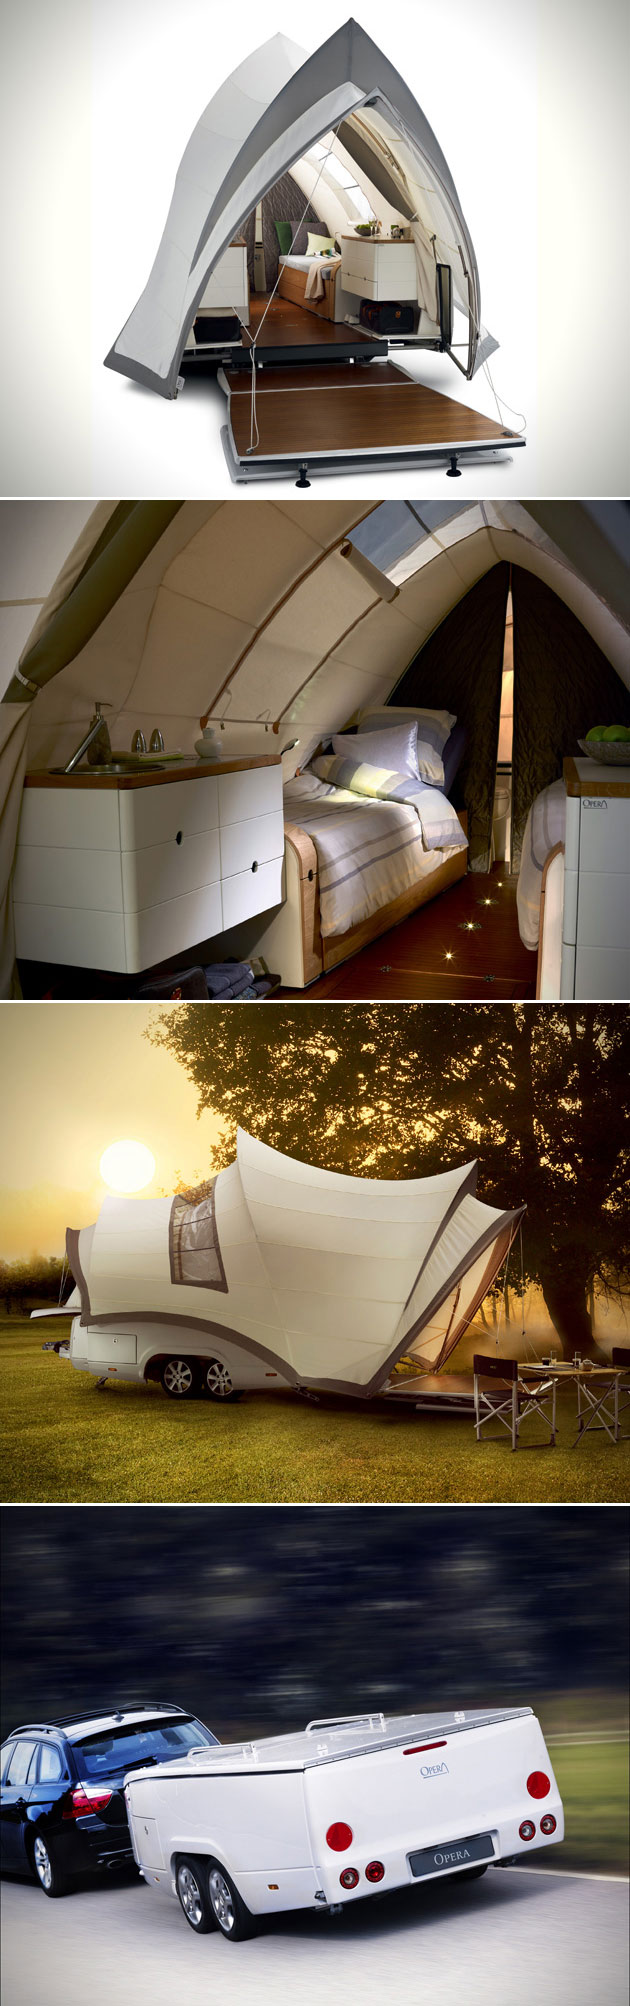 Opera Luxury Camper